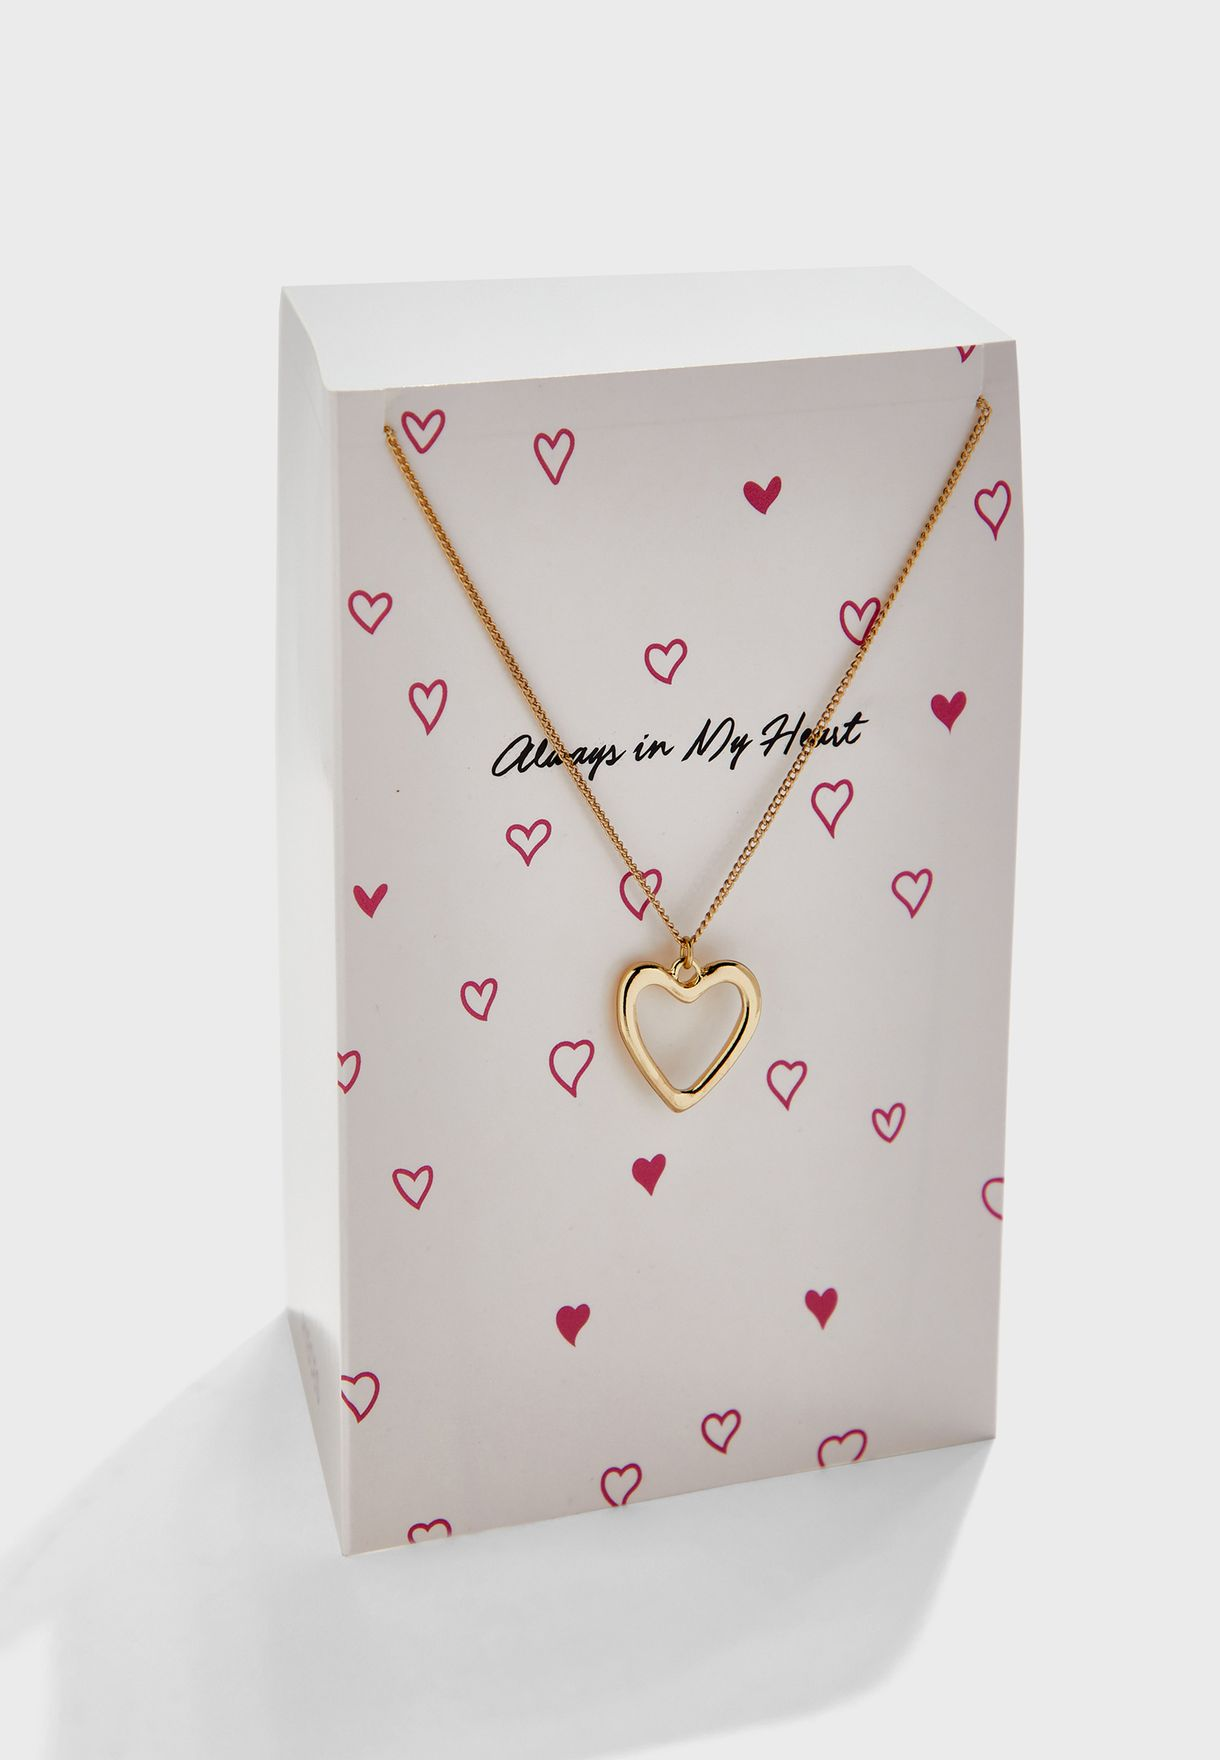 Nuna Gift Card Necklace Box